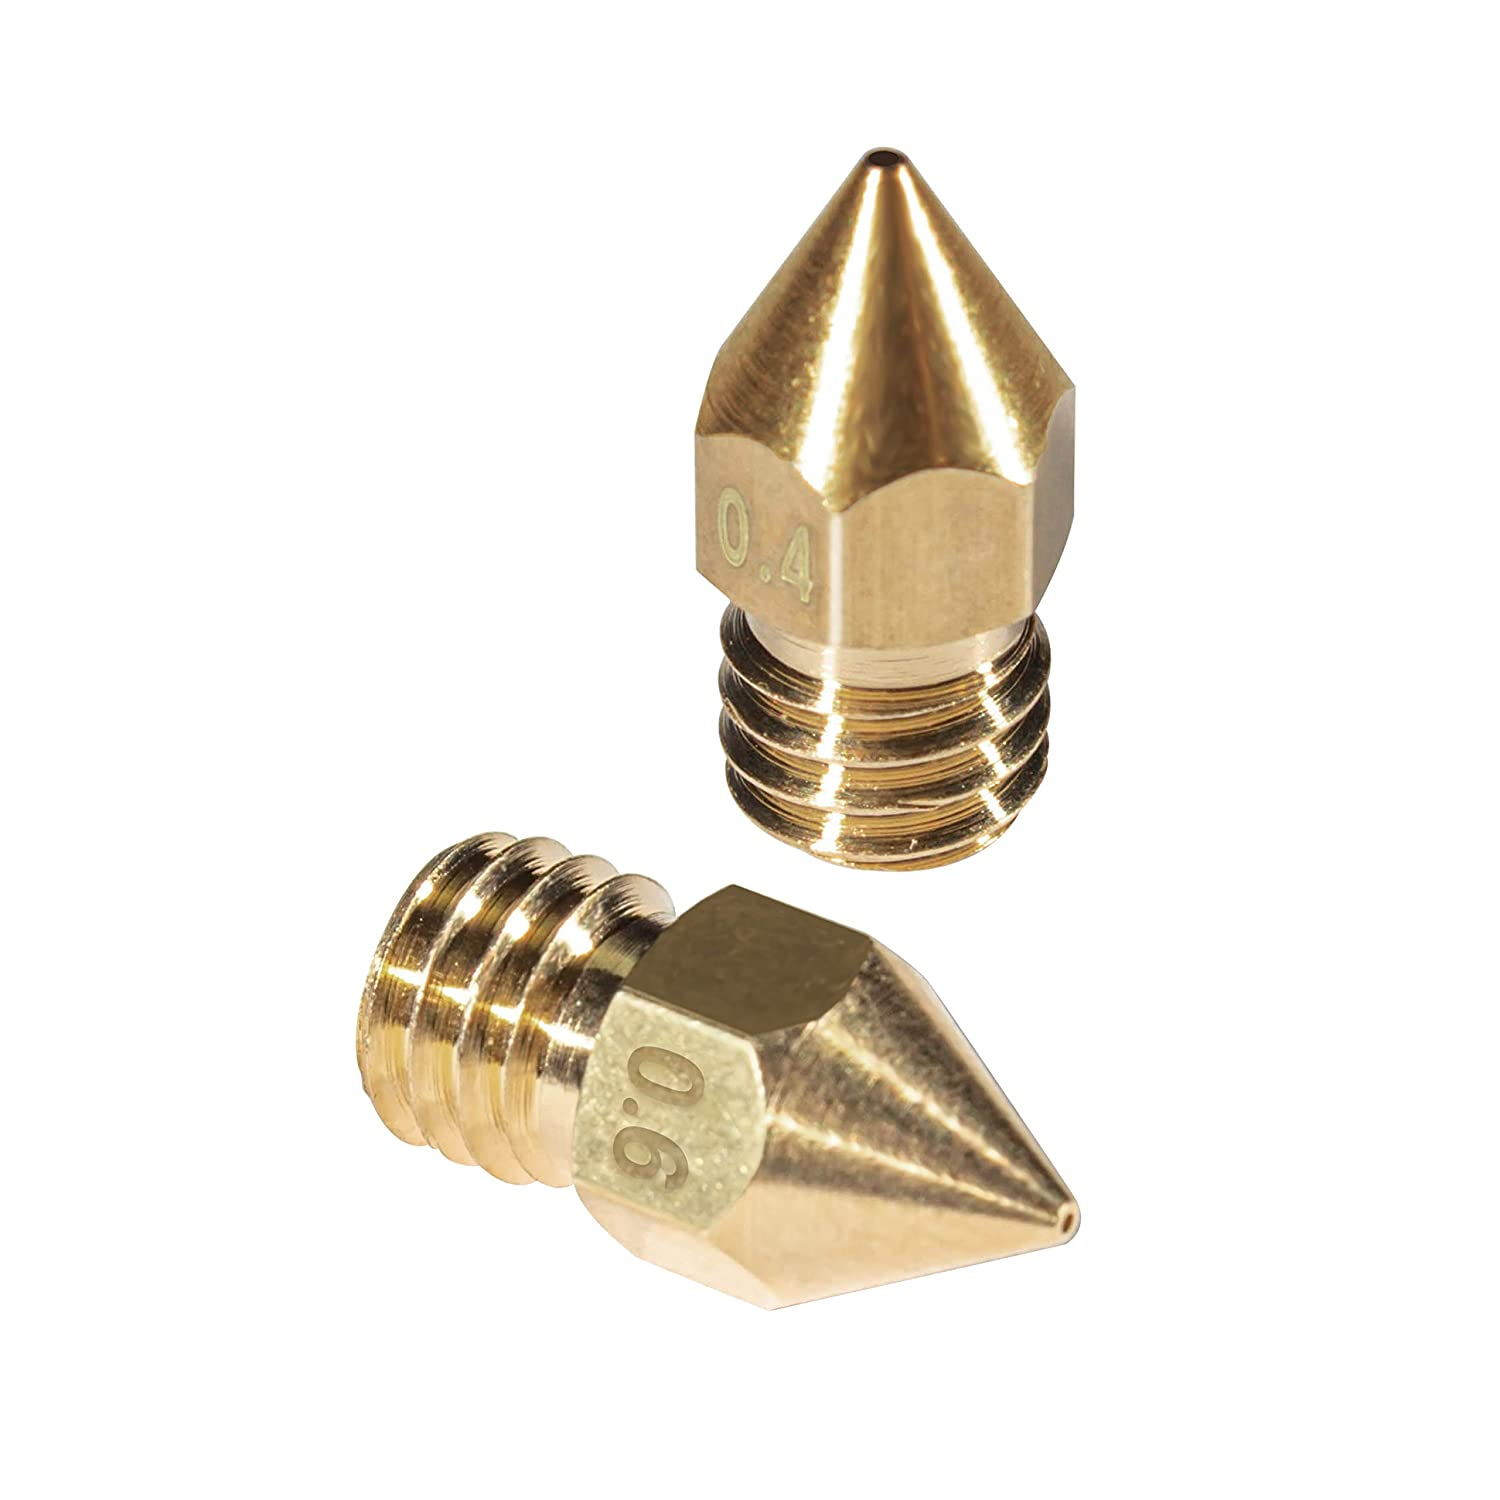 3D Printer Nozzle 12 Pieces Brass Extruder Nozzle Print Head 0.4mm 0.6mm Compatible with MK8 Makerbot Creality CR-10 M6 Thread 3D Printer